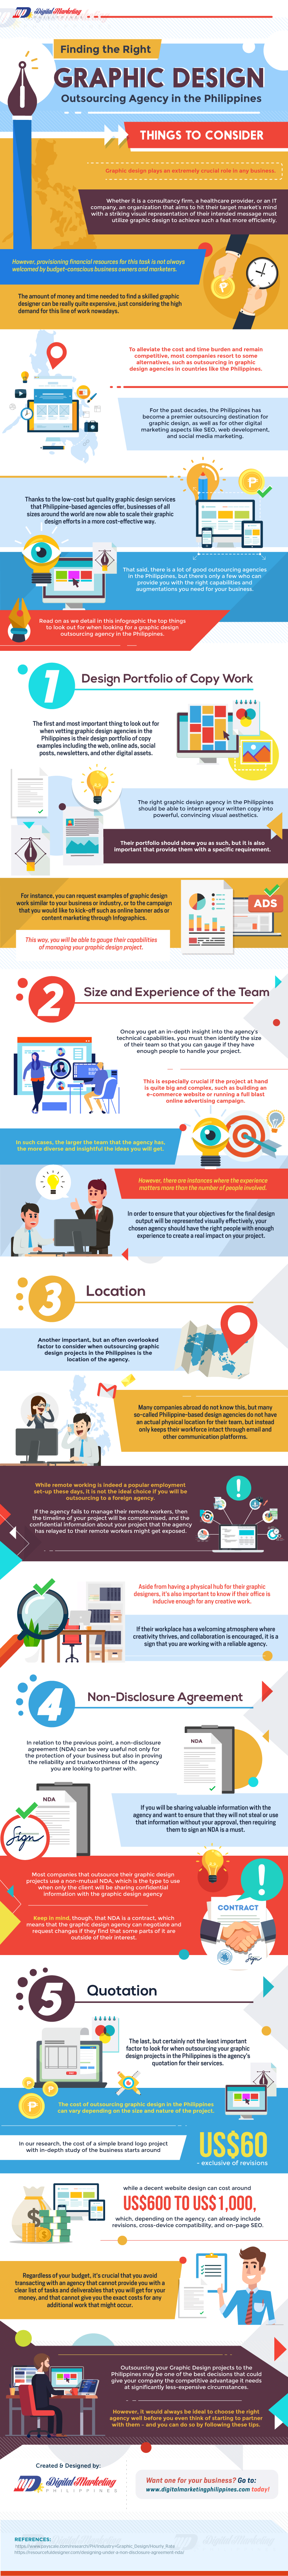 Finding the Right Graphic Design Outsourcing Agency in the Philippines - Things to Consider